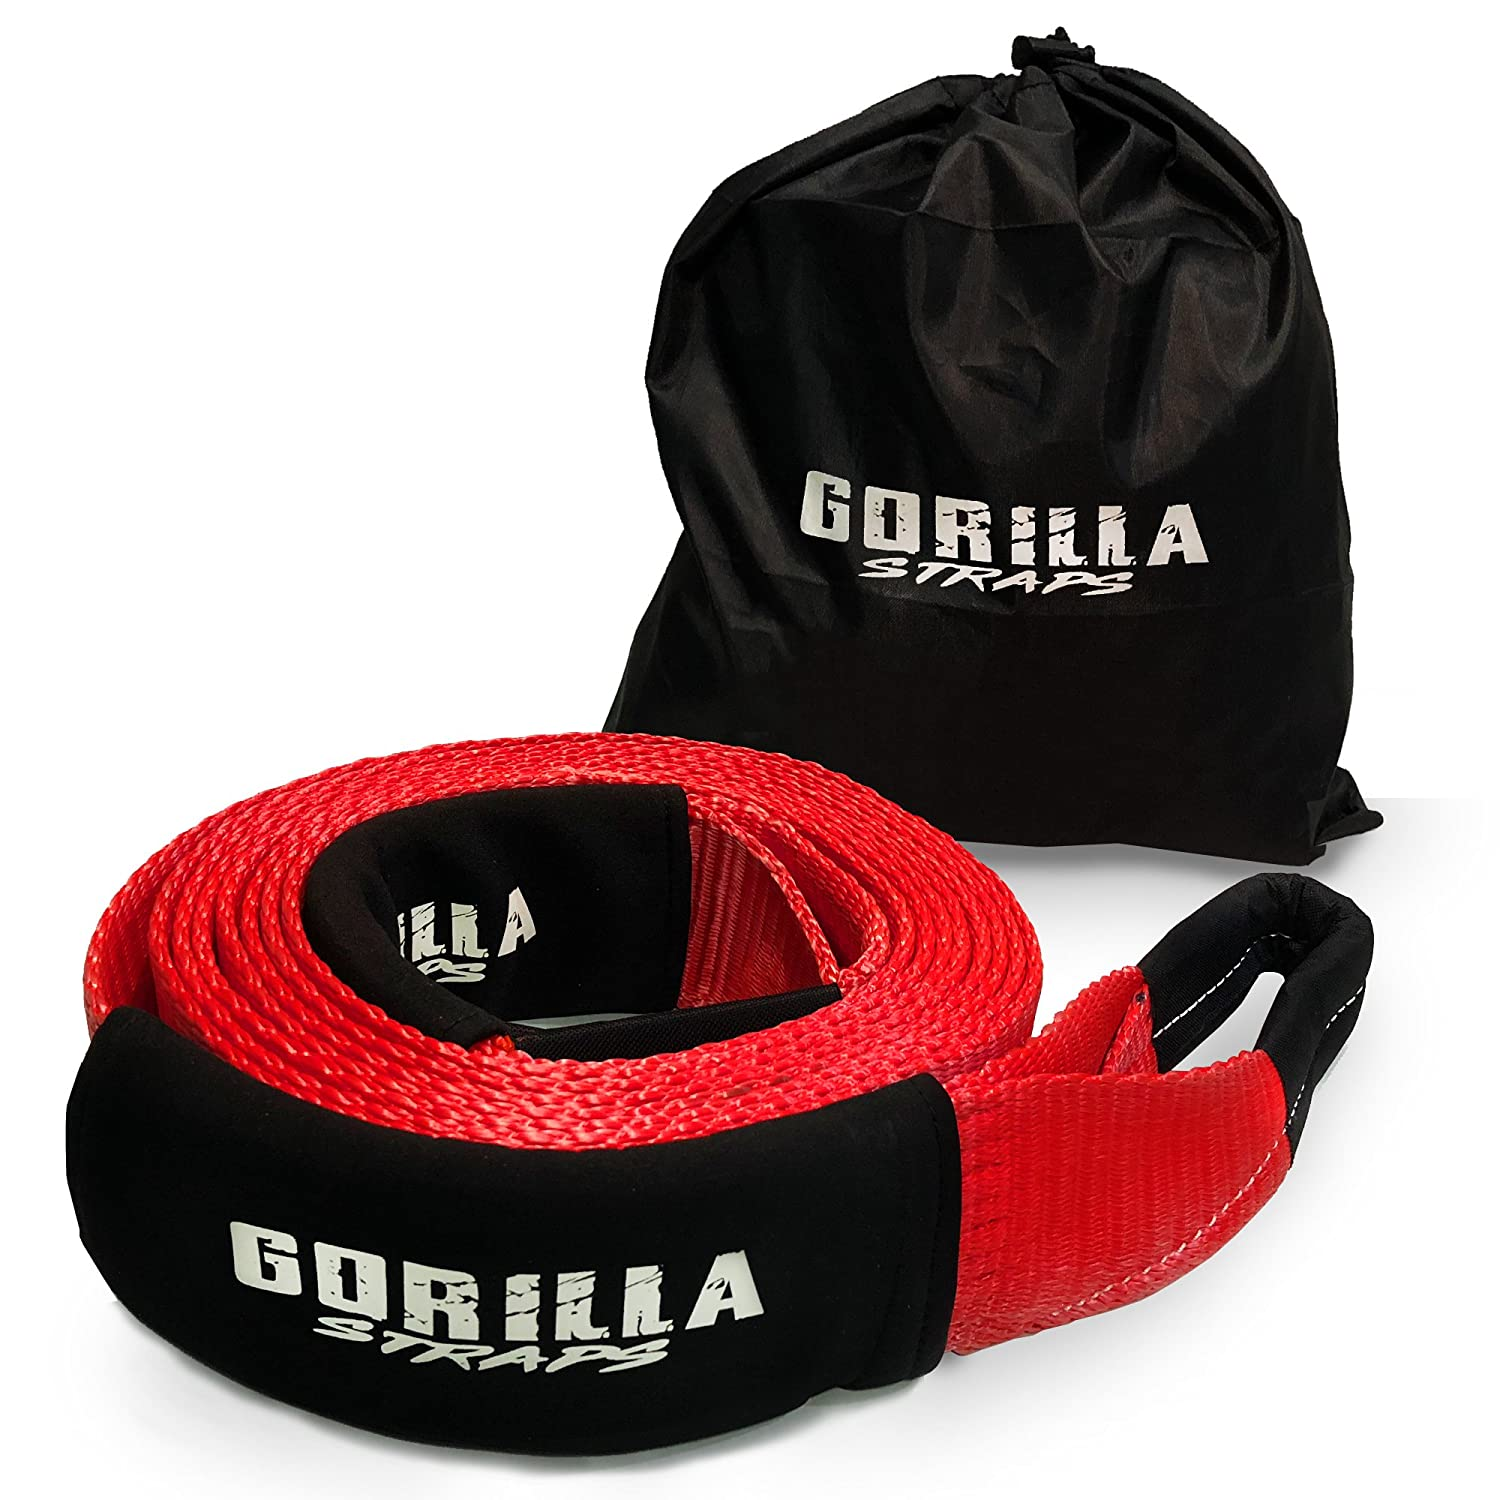 mud 3 x 20ft 30,000lb strength with reinforced loops built for off-roading snow and other emergency towing Gorilla Straps Heavy Duty Recovery Tow Strap